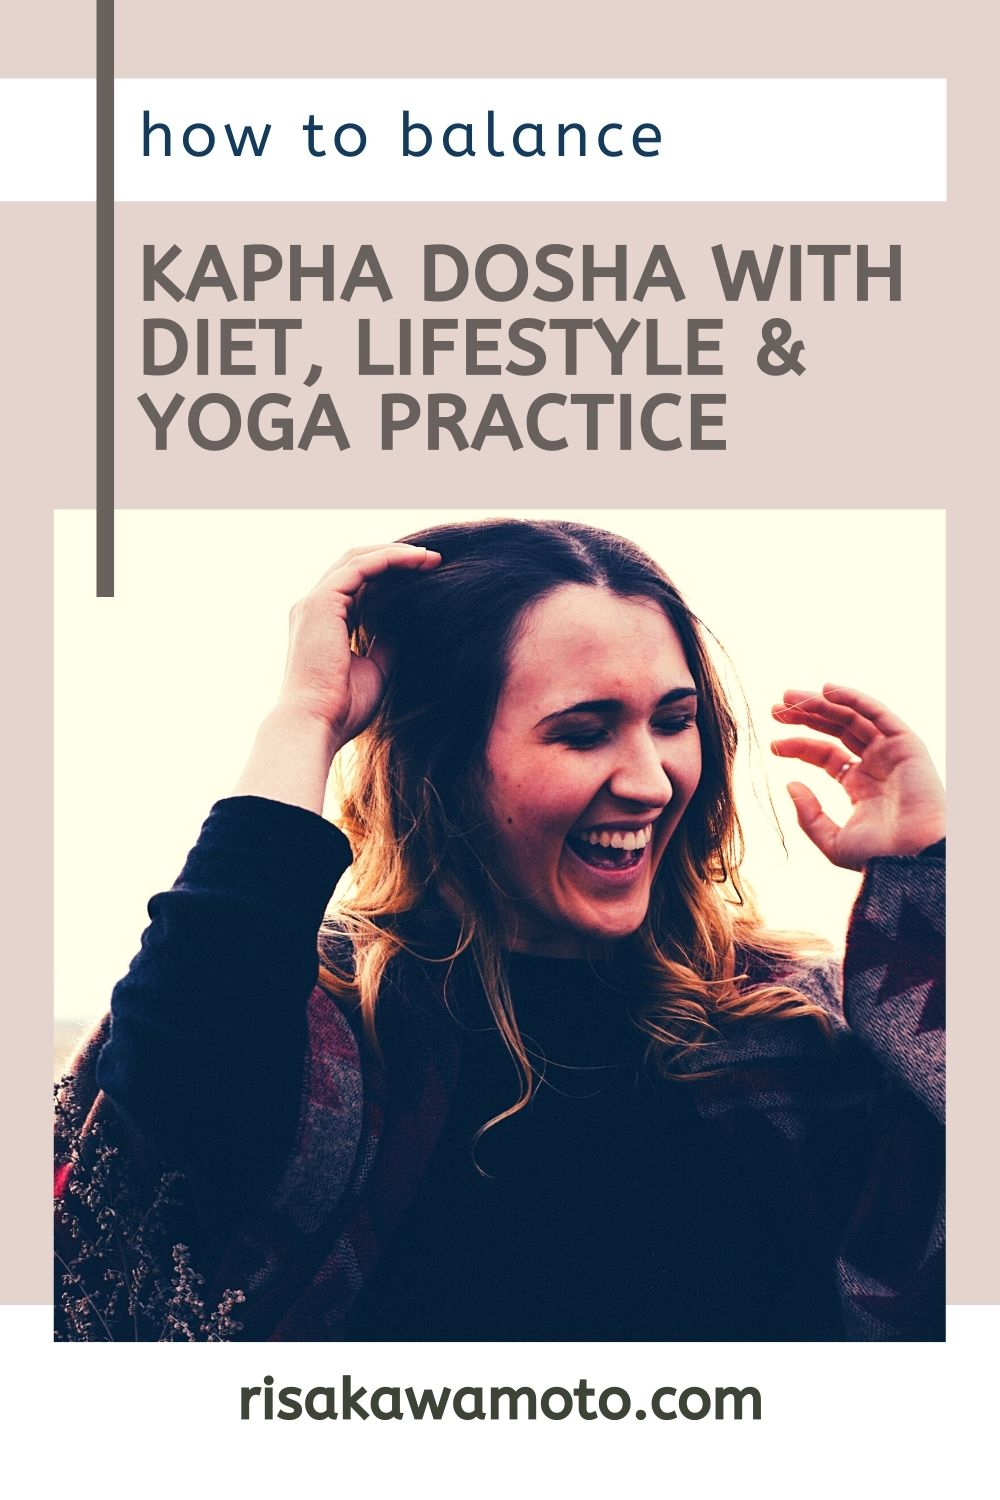 How to Balance Kapha Dosha with Diet, Lifestyle & Yoga Practice